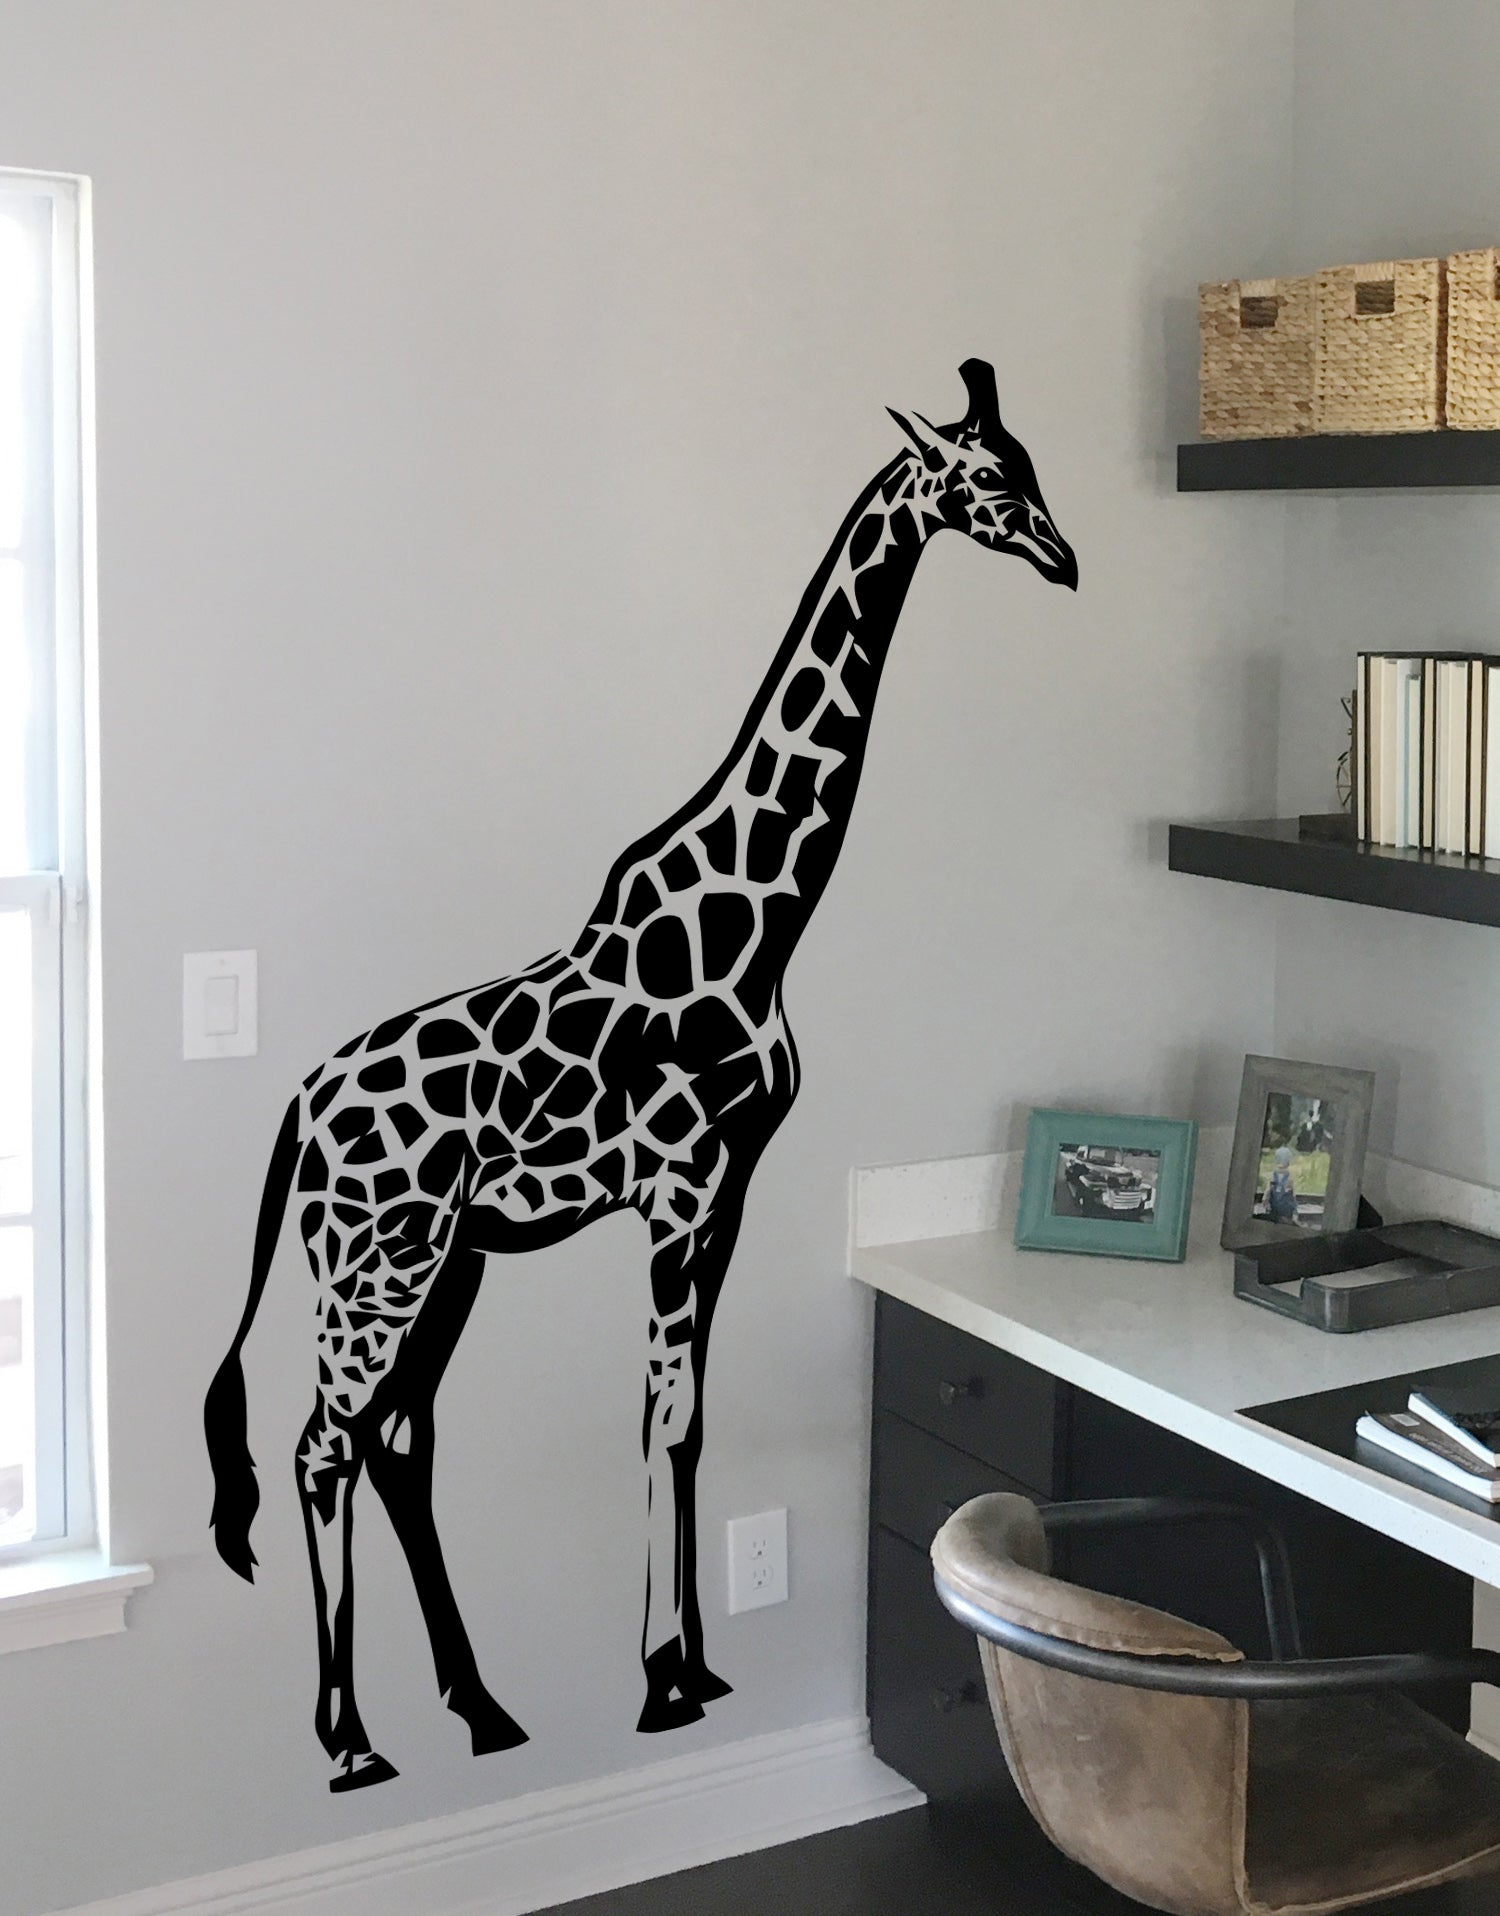 Tall Giraffe Wall Decal for the Nursery Room. #383